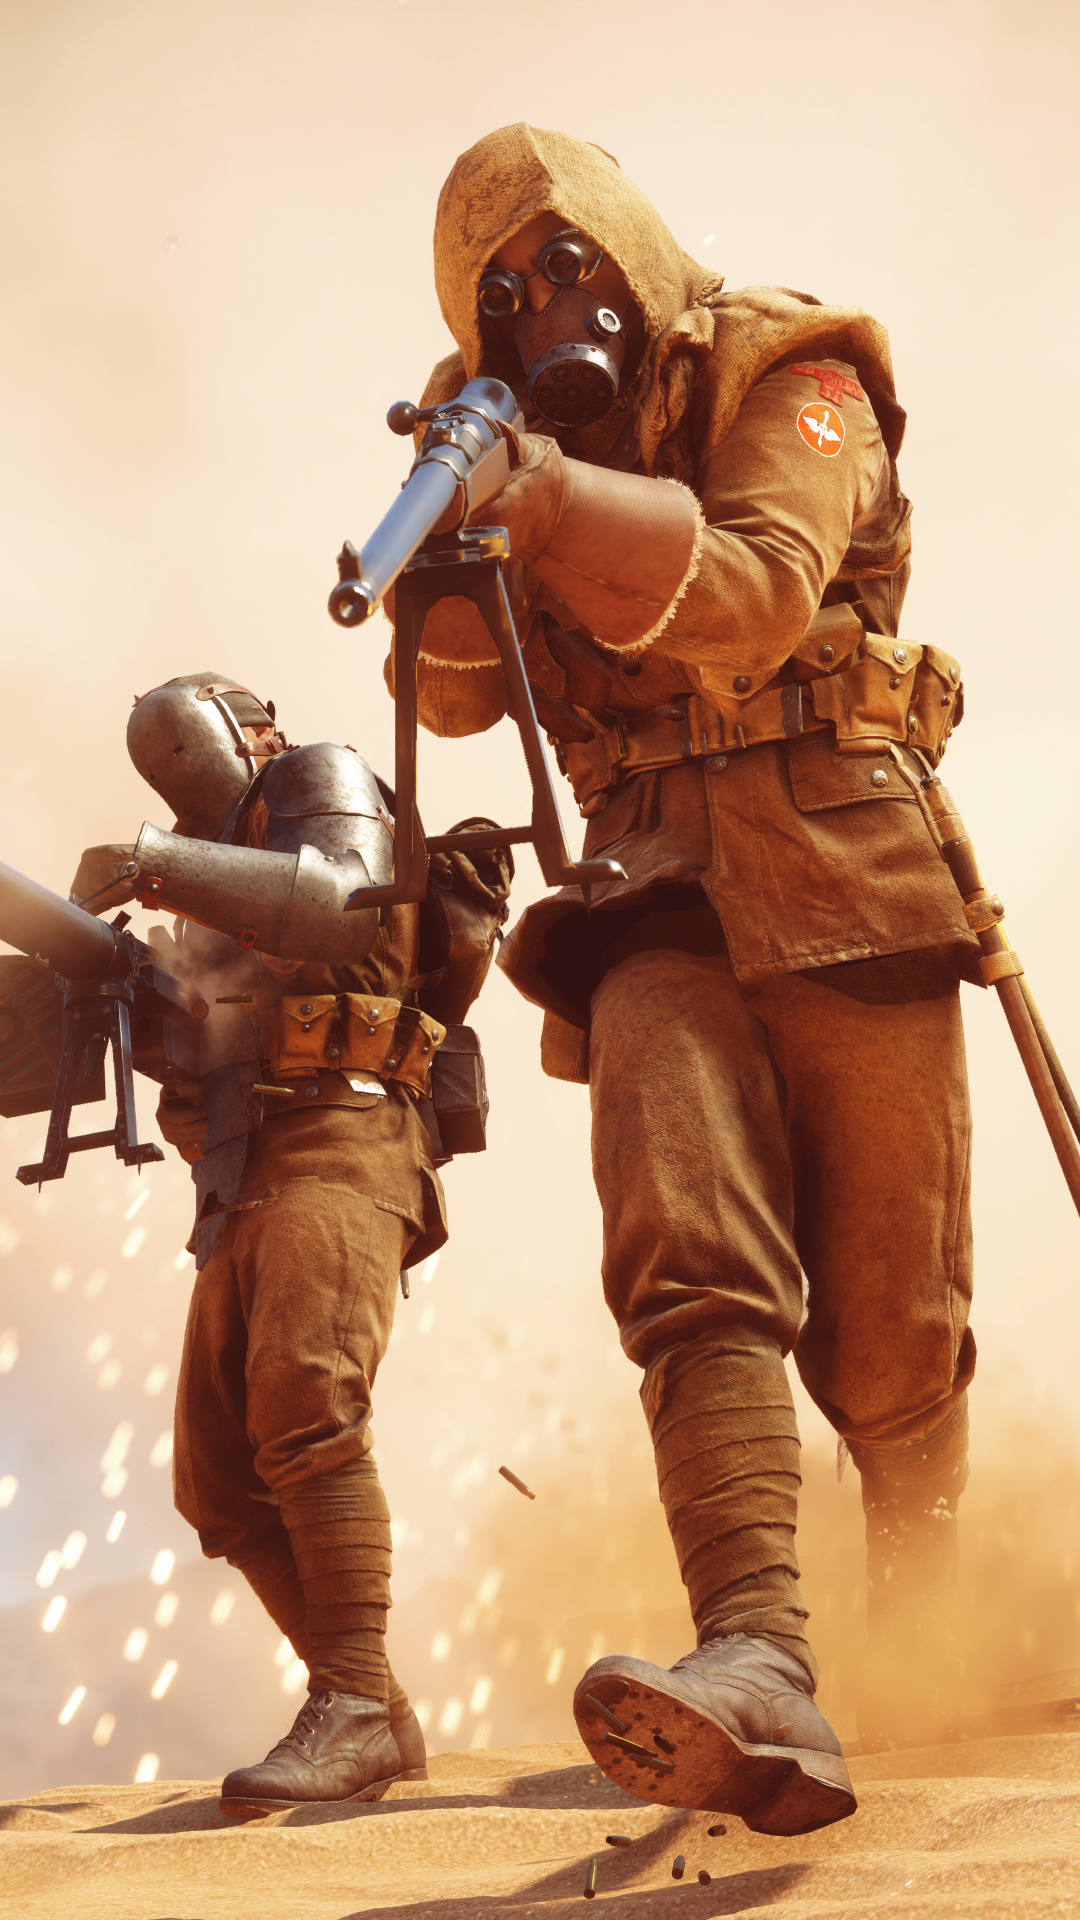 Download-this-iPhone-S-Video-Game-Battlefield-1080x1920-for-all-your-Phones-and-Tab-wallpaper-wp3605070